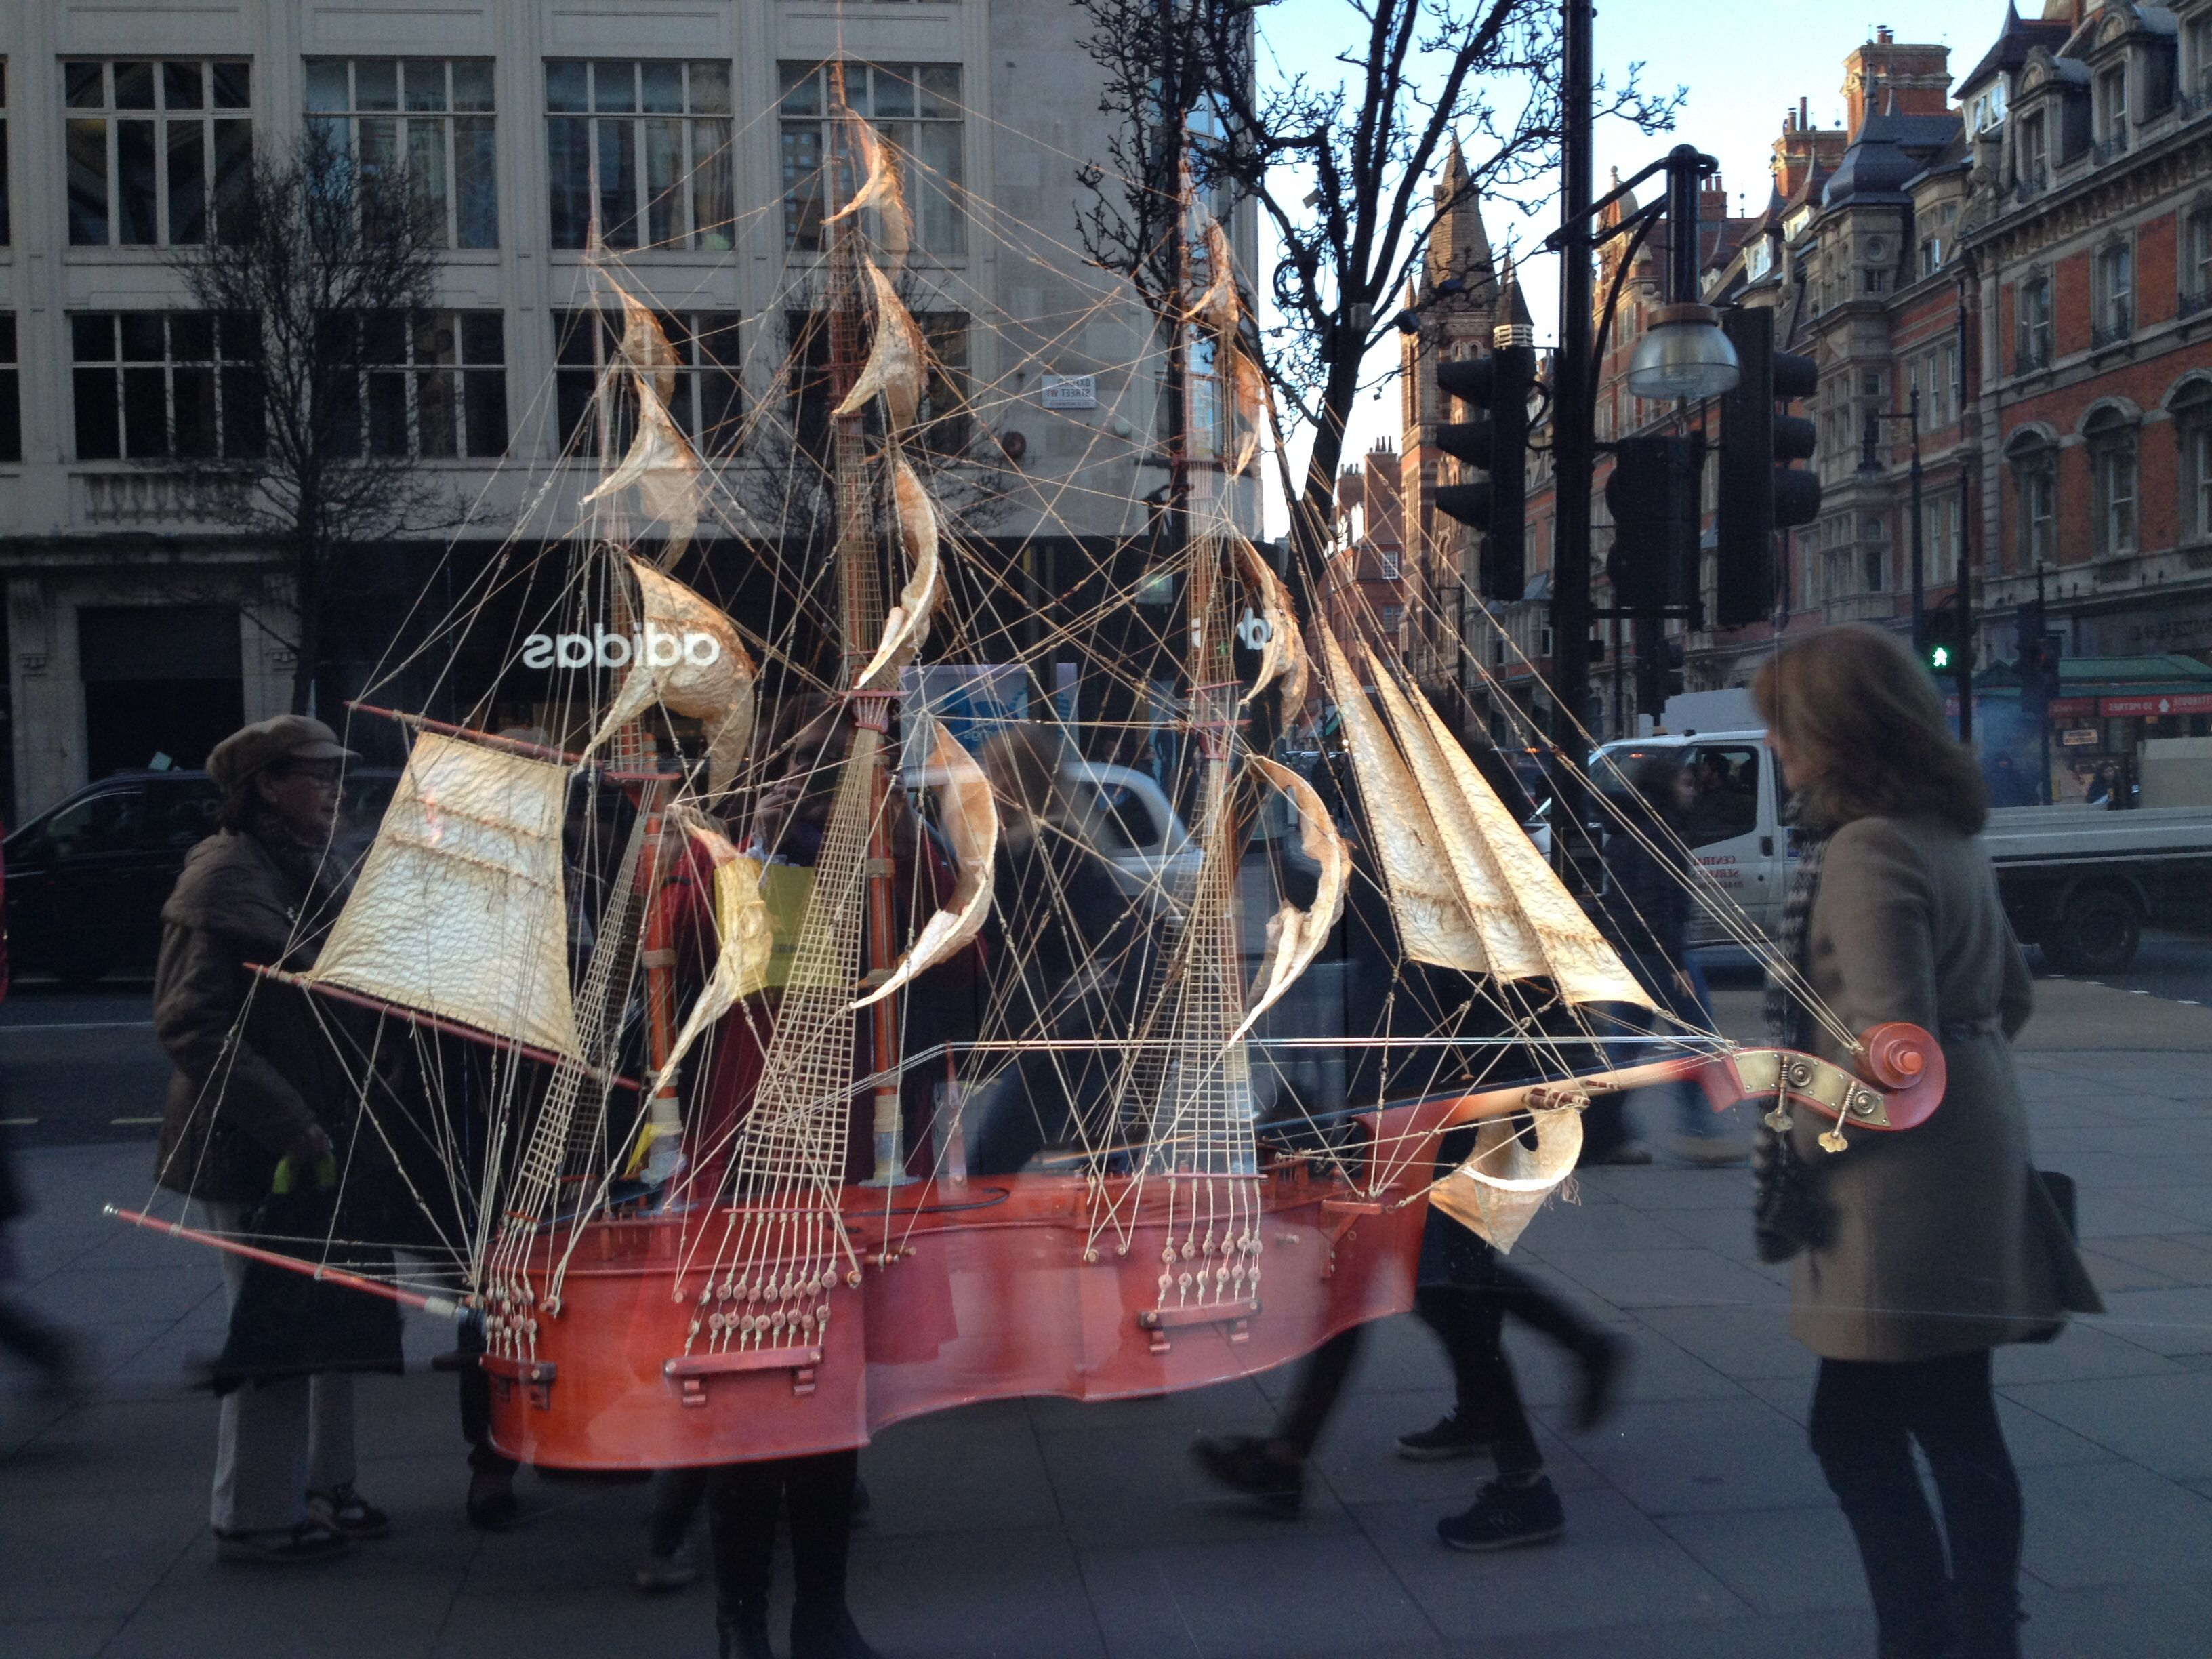 Awesome cello ship in Selfridges Oxford street window